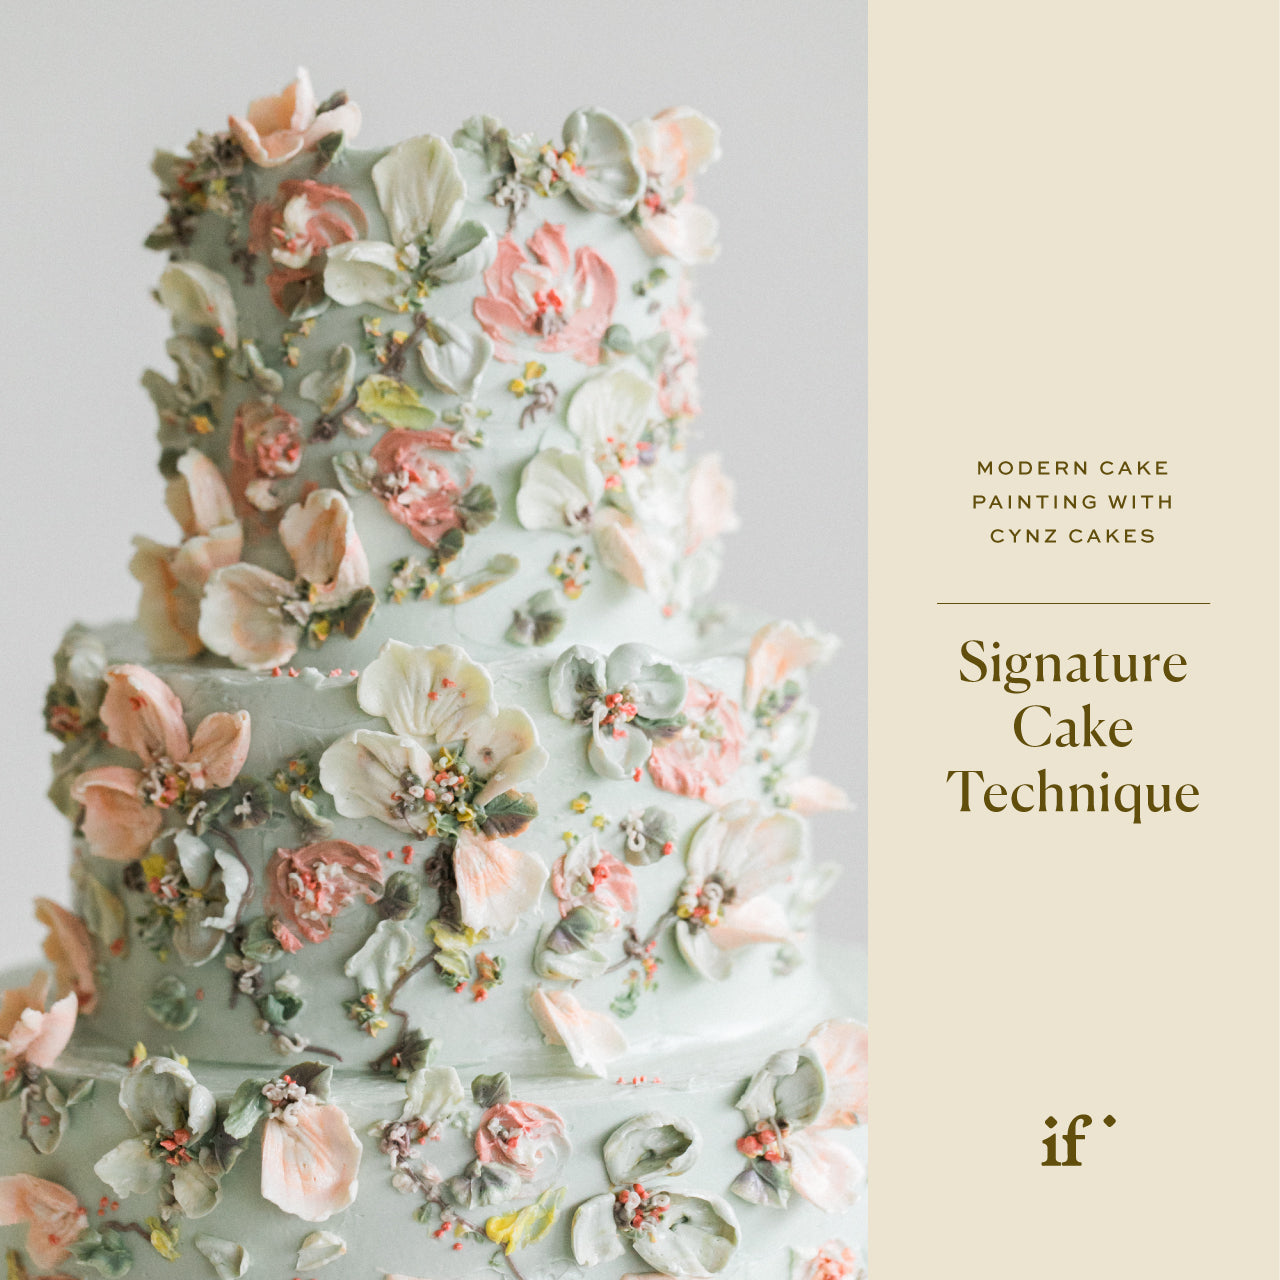 Sale: Signature Cake Technique with Cynz Cakes